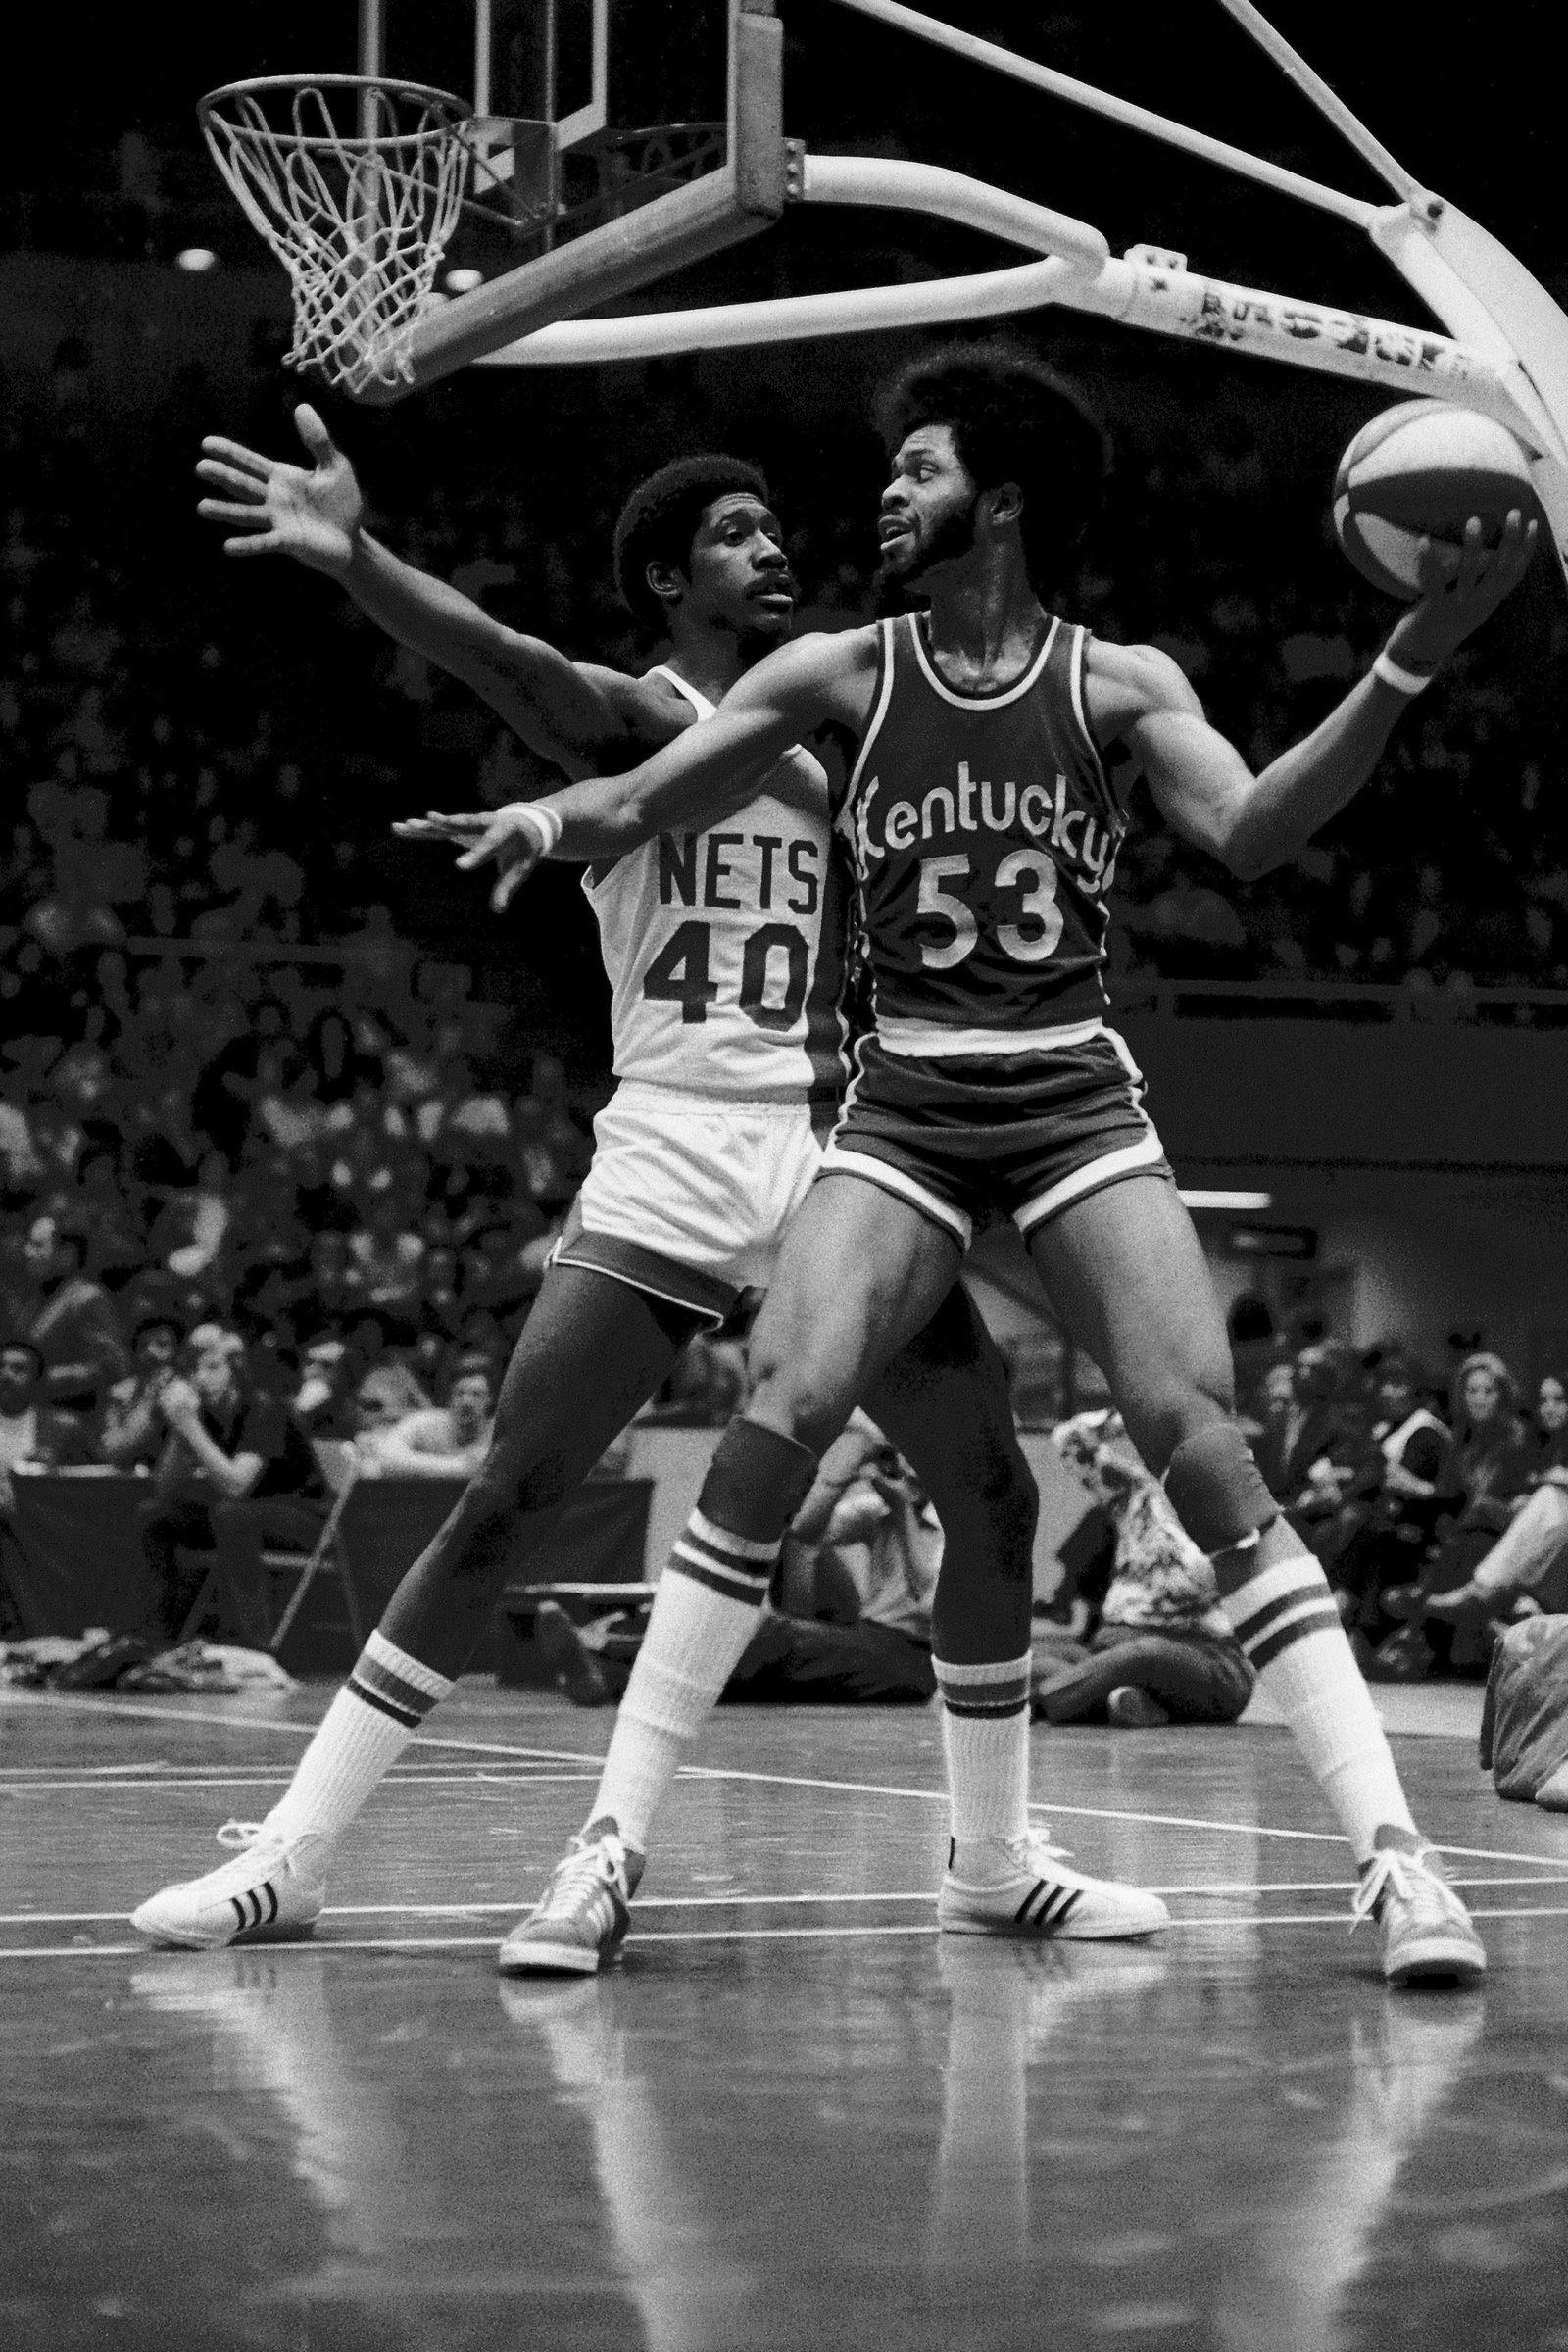 Artis Gilmore #53 of the Kentucky Colonels looks to pass against the New Jersey Nets during a game played in 1975 at the Brendan Byrne Arena in East Rutherford, New Jersey.